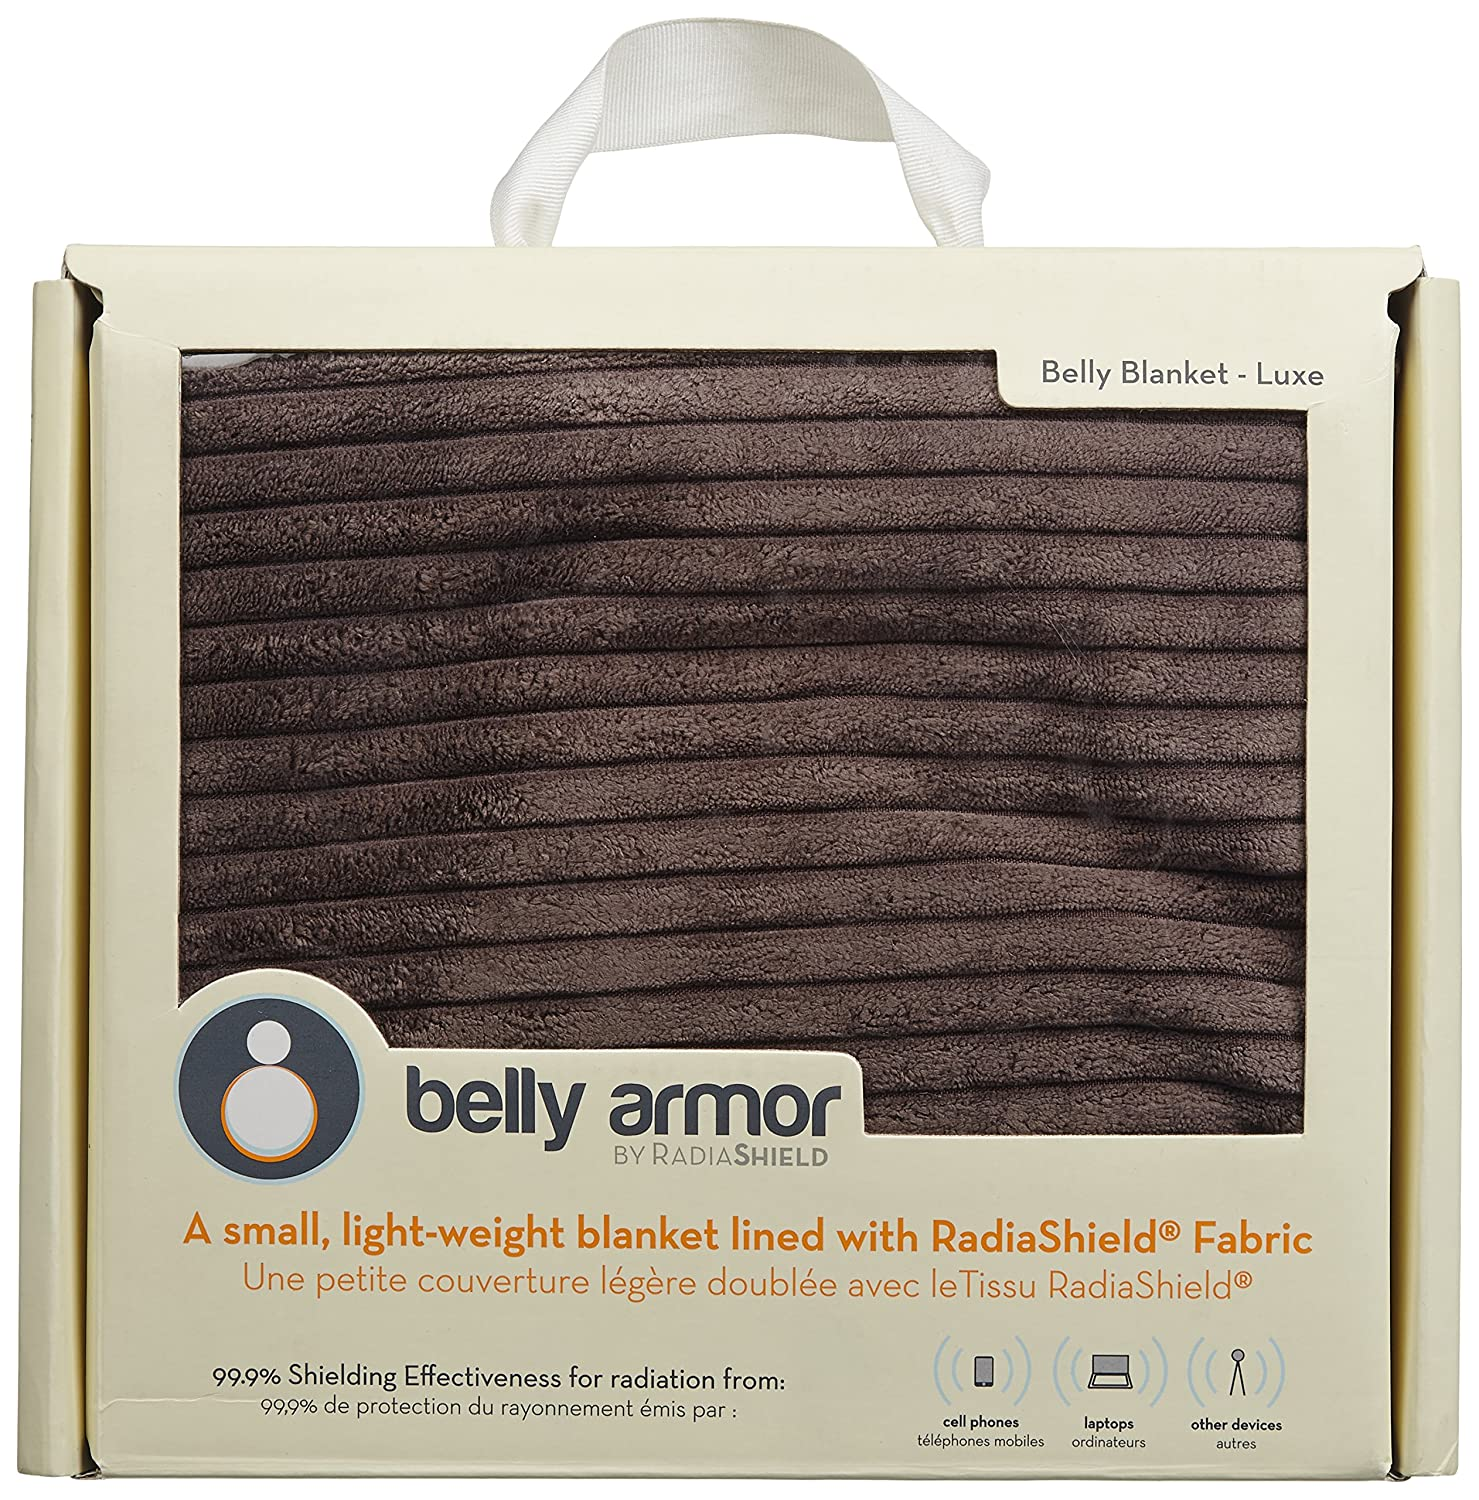 BELLY ARMOR Anti-Radiation Maternity Belly Blanket Luxe (Aqua, 100% Protective Micro-Fleece, 30 x 35 inches) | Radiation-shielding Baby Blanket | EMF Protection for Pregnancy, Fertility, Early Childhood RadiaShield Technologies BBL.Aq.04.10.00005